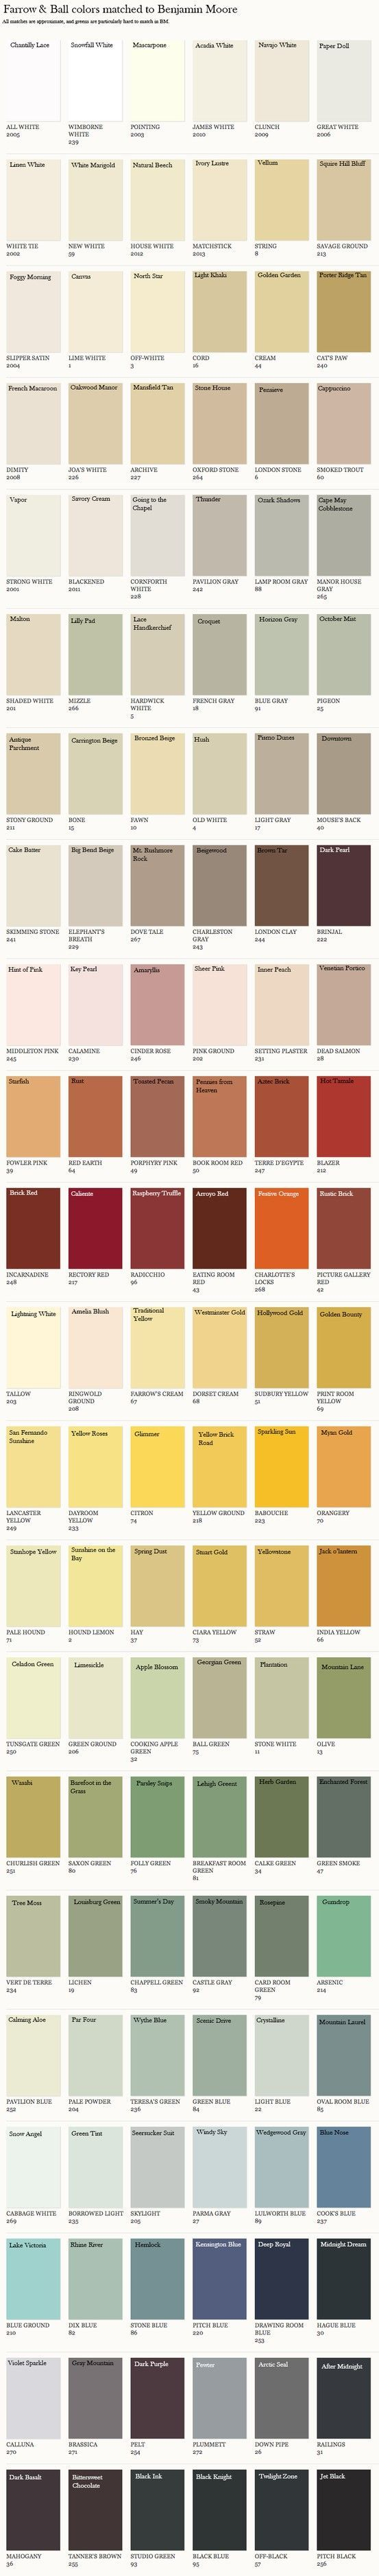 Farrow Ball Colors Matched To Benjamin Moore Couleur